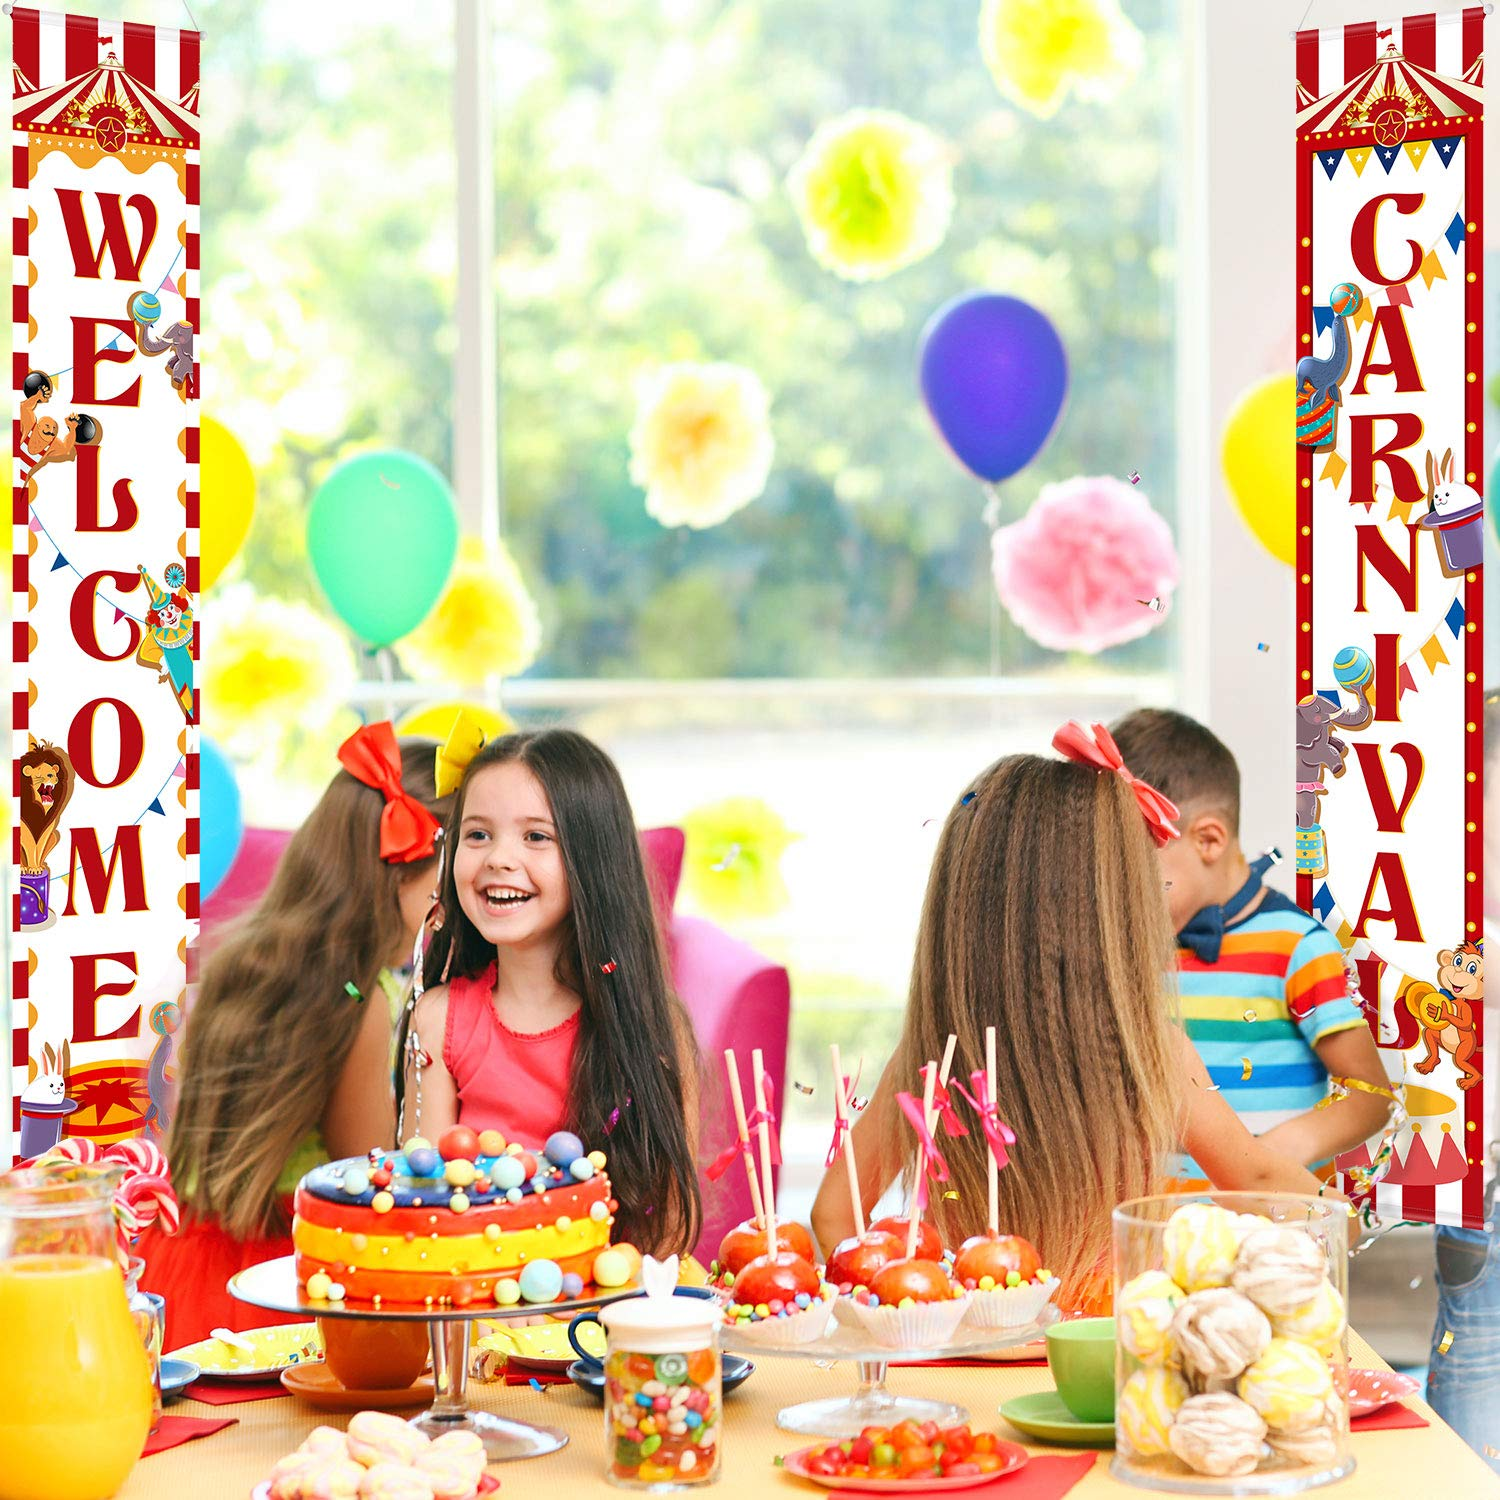 Carnival Decoration Porch Sign Carnival Circus Birthday Party Welcome Banner Decoration Set Circus Carnival Banner Carnival Party Supply Decor Home Decorations